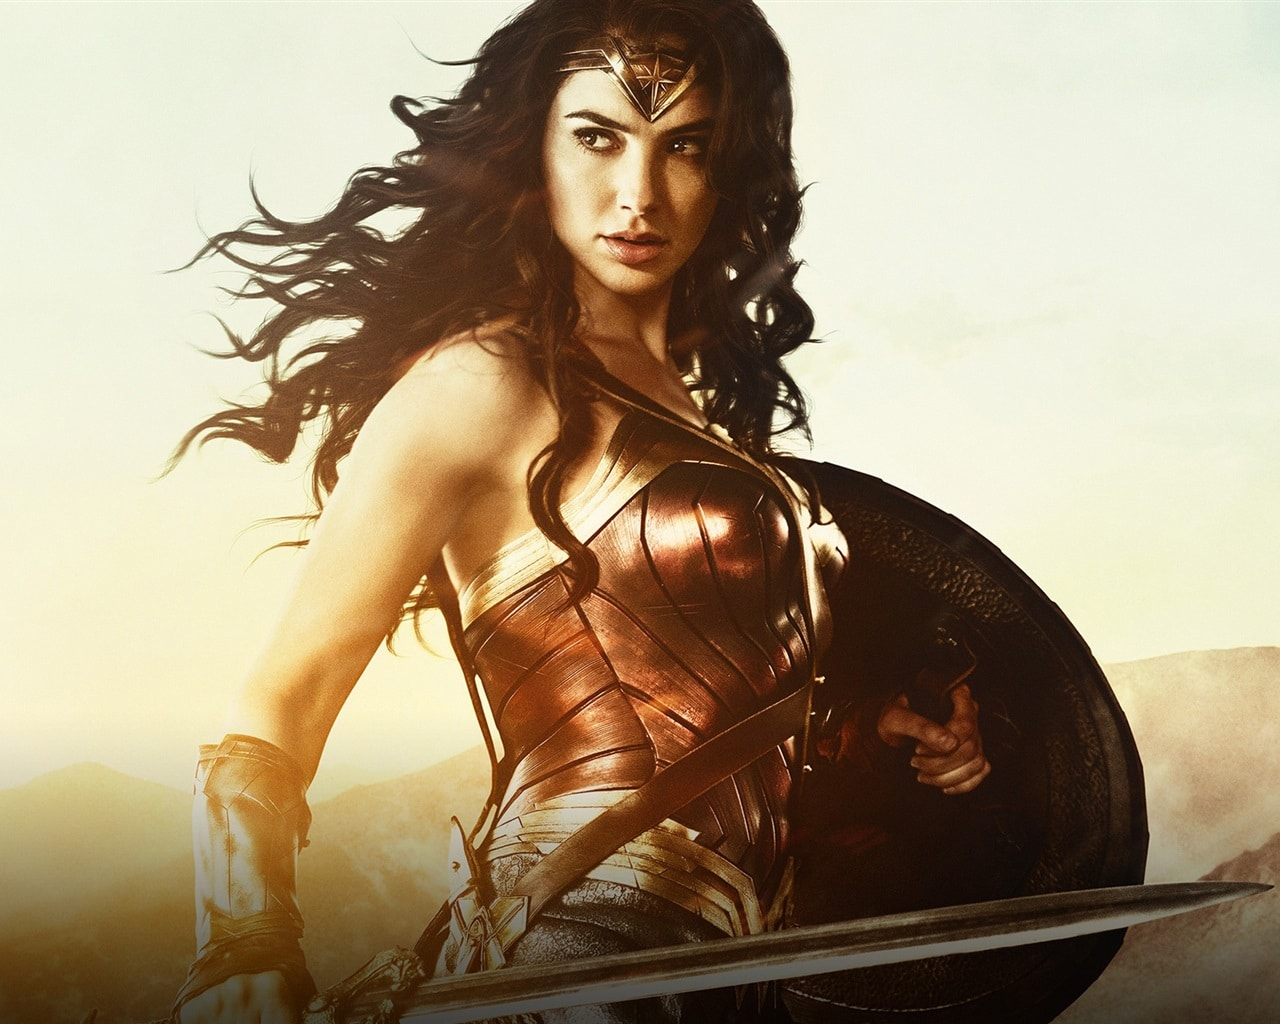 Wonder Woman Becomes The Most Popular SuperHero among Australian kids